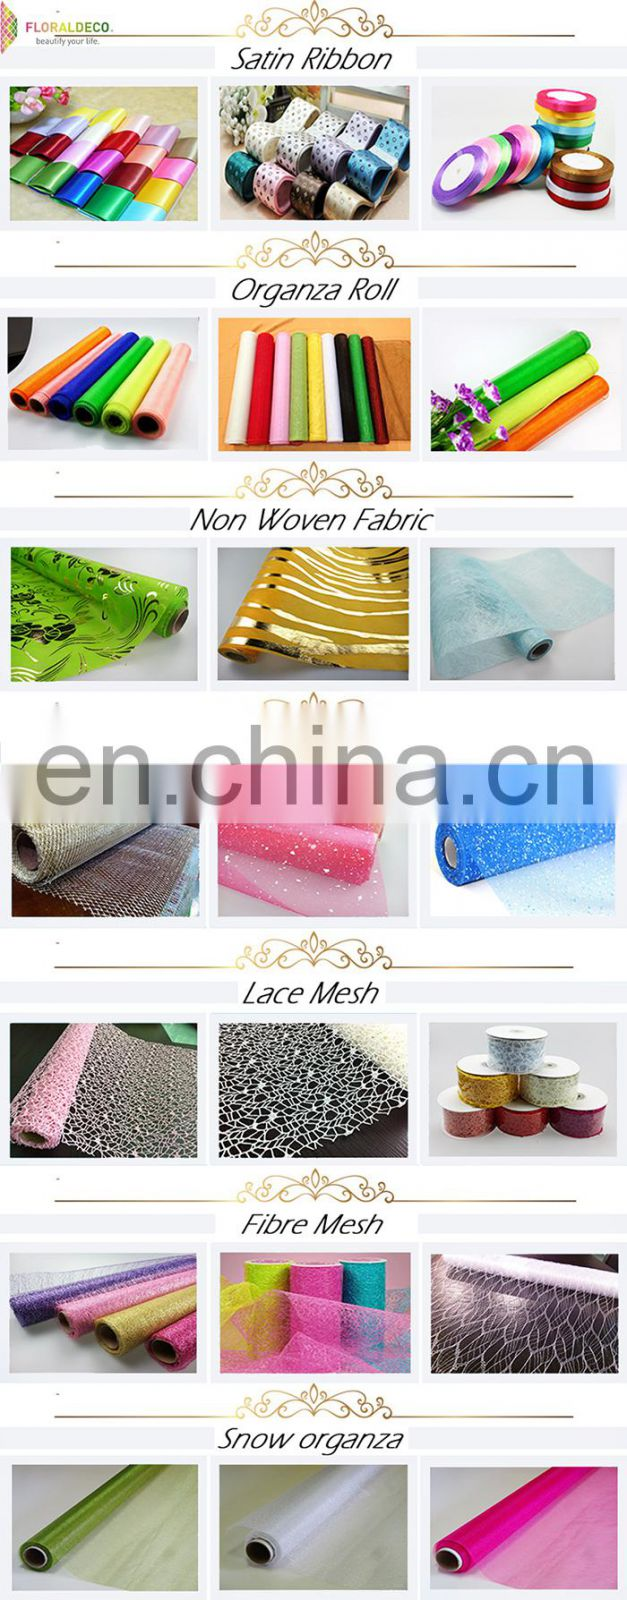 Hot selling flower wrapping organza fabric roll for chair sash